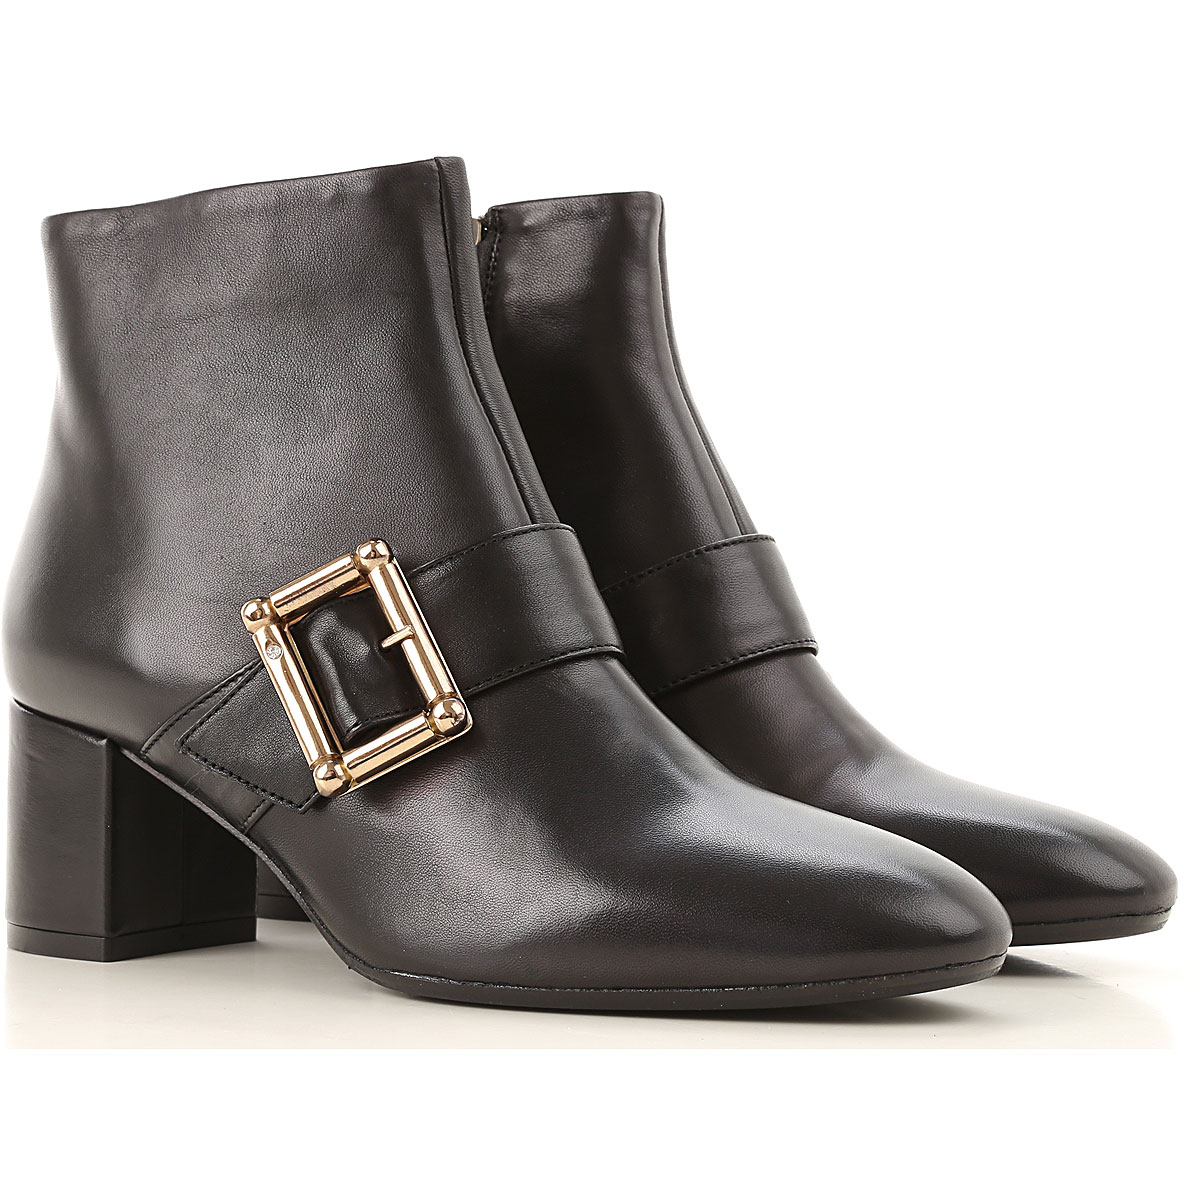 Anna Baiguera Boots for Women, Booties On Sale, Black, Leather, 2019, 10 11 6 7 8 9